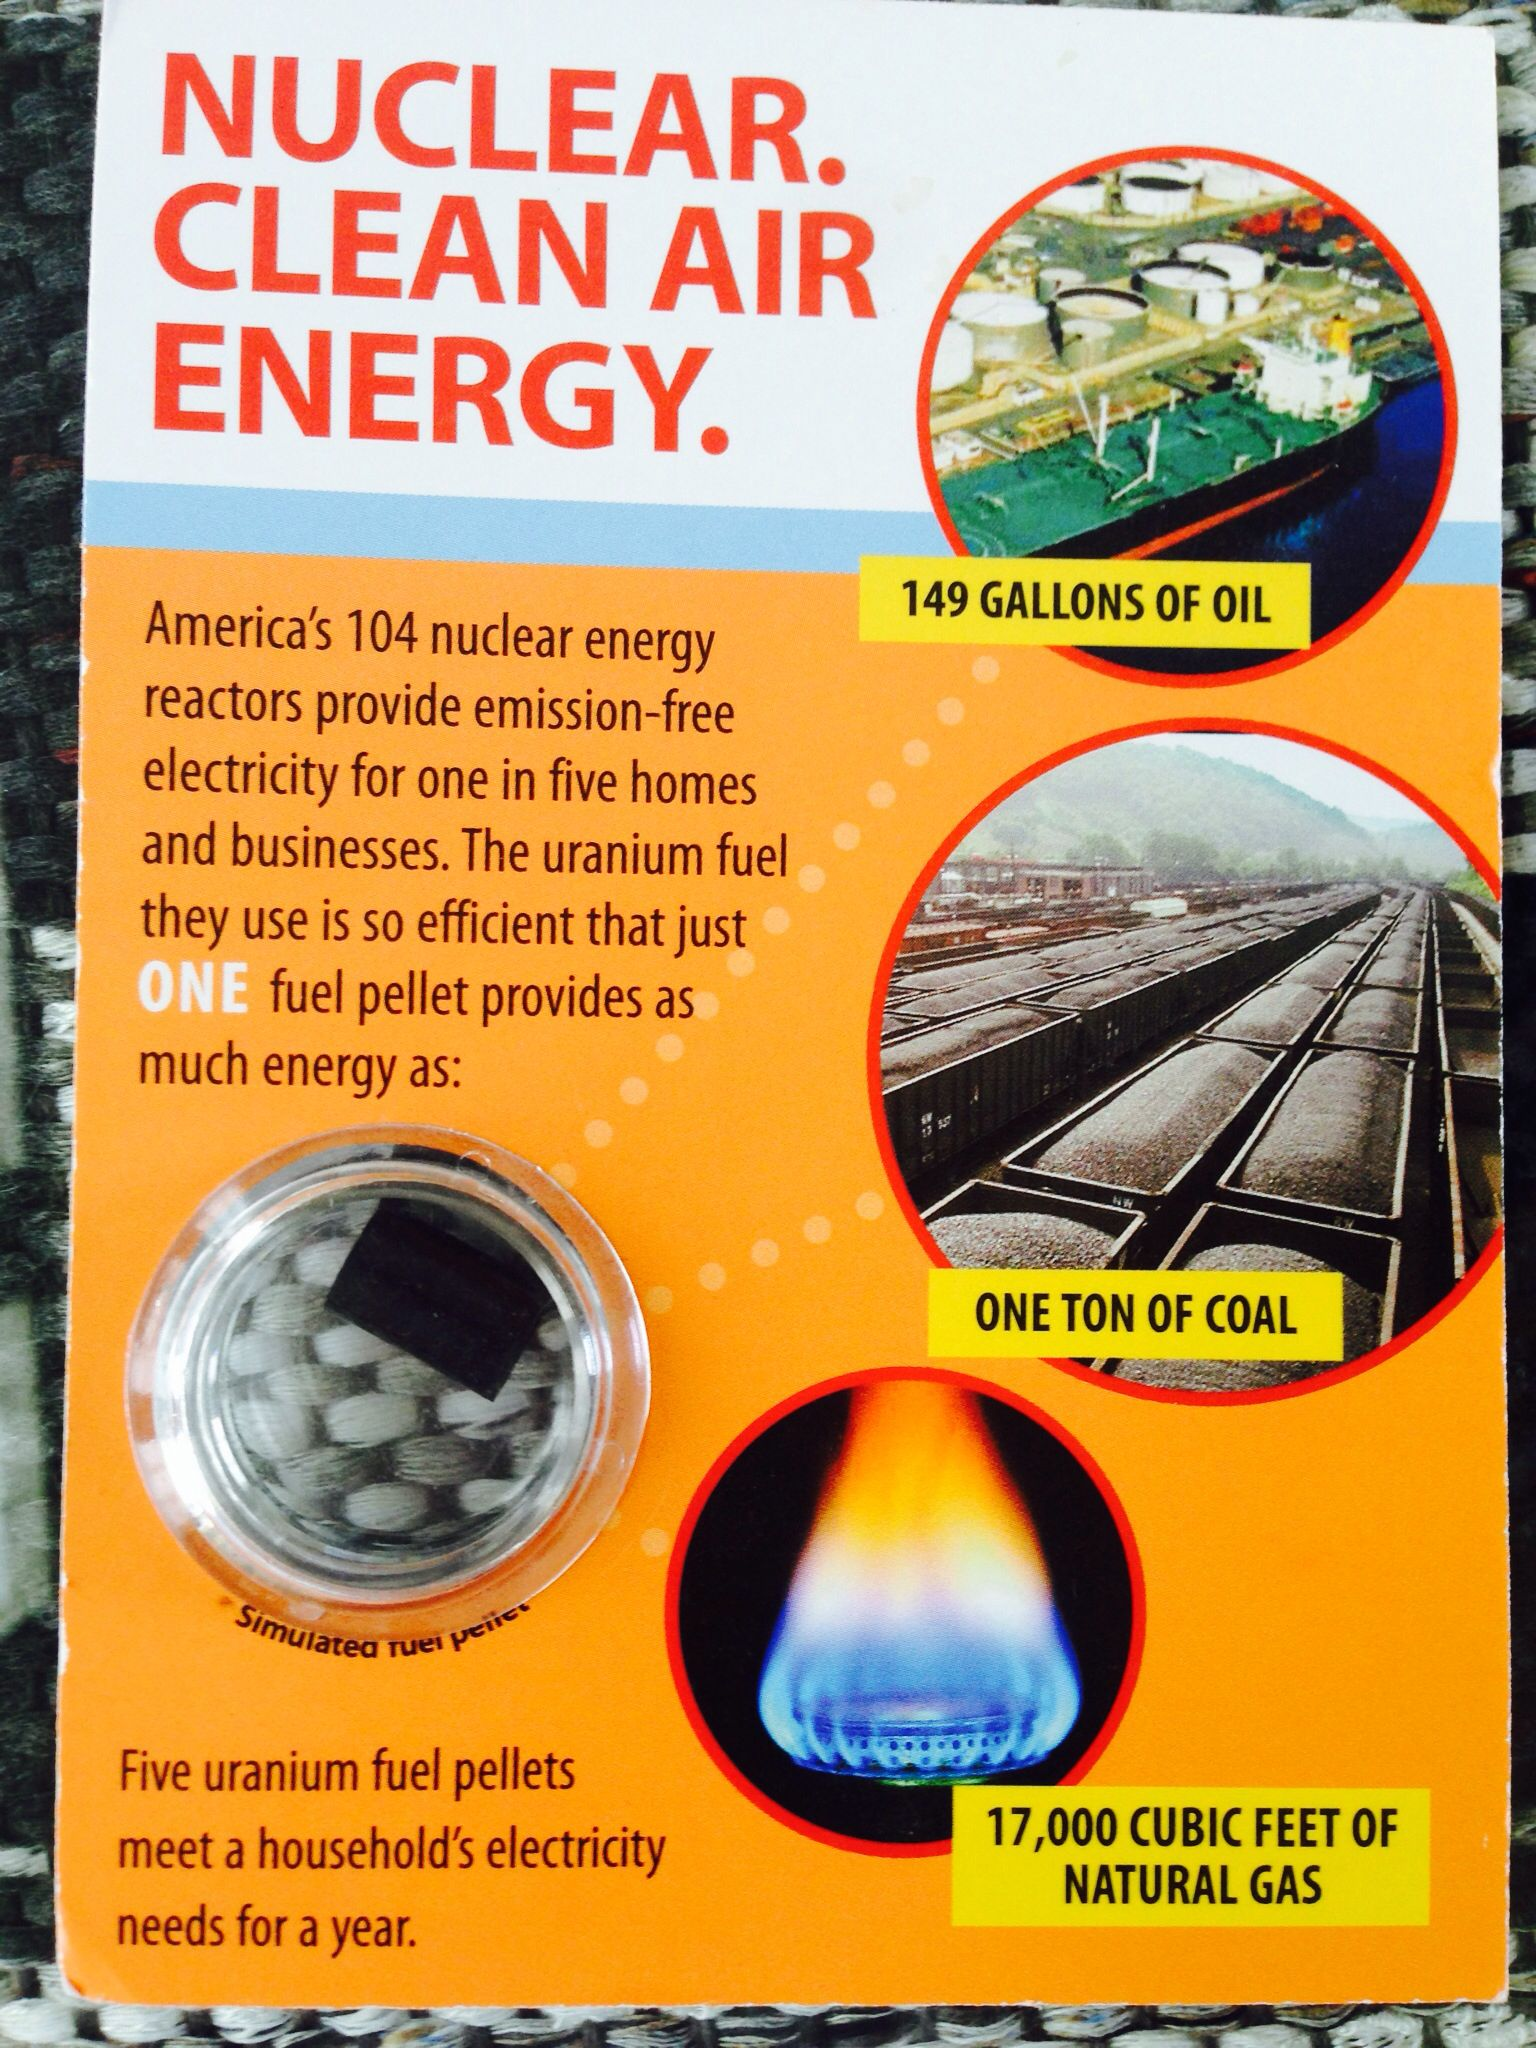 5 Uranium Pellets The Size Of Your Pinky Nail Equals 1 Ton Of Coal 149 Gallons Of Oil 1 700 Cubic Feet Of Gas Nuclear Energy Clean Air New Green